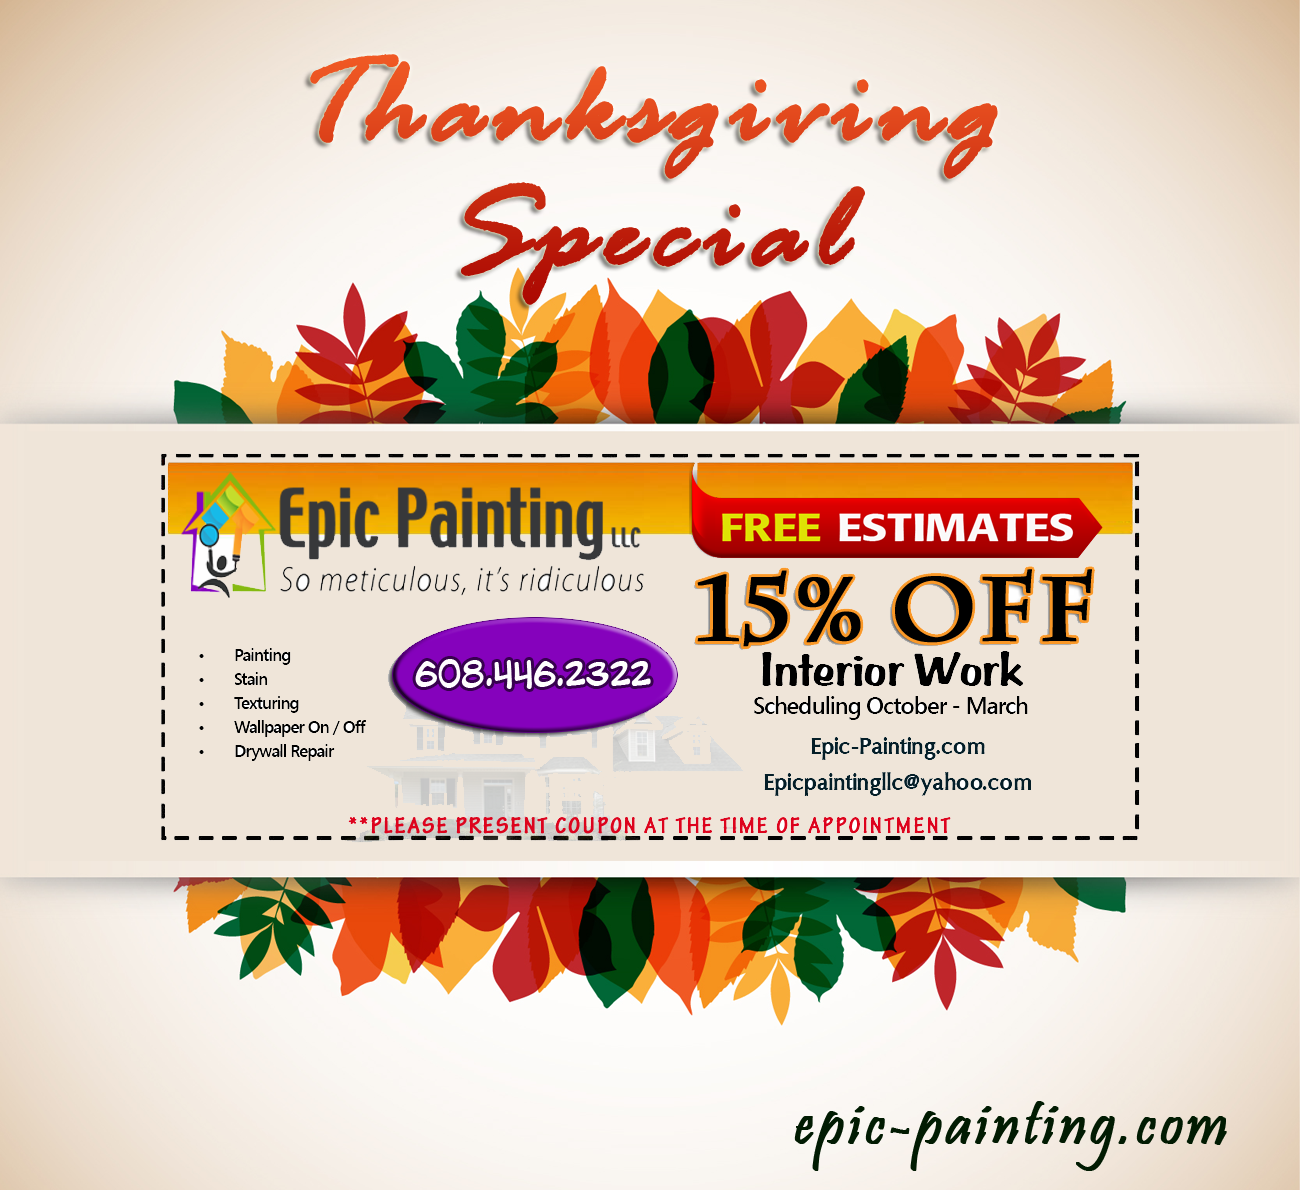 http://www.epic-painting.com/wp-content/uploads/2014/11/Thanksgiving-Interior-Painting-Special-madison.pdf